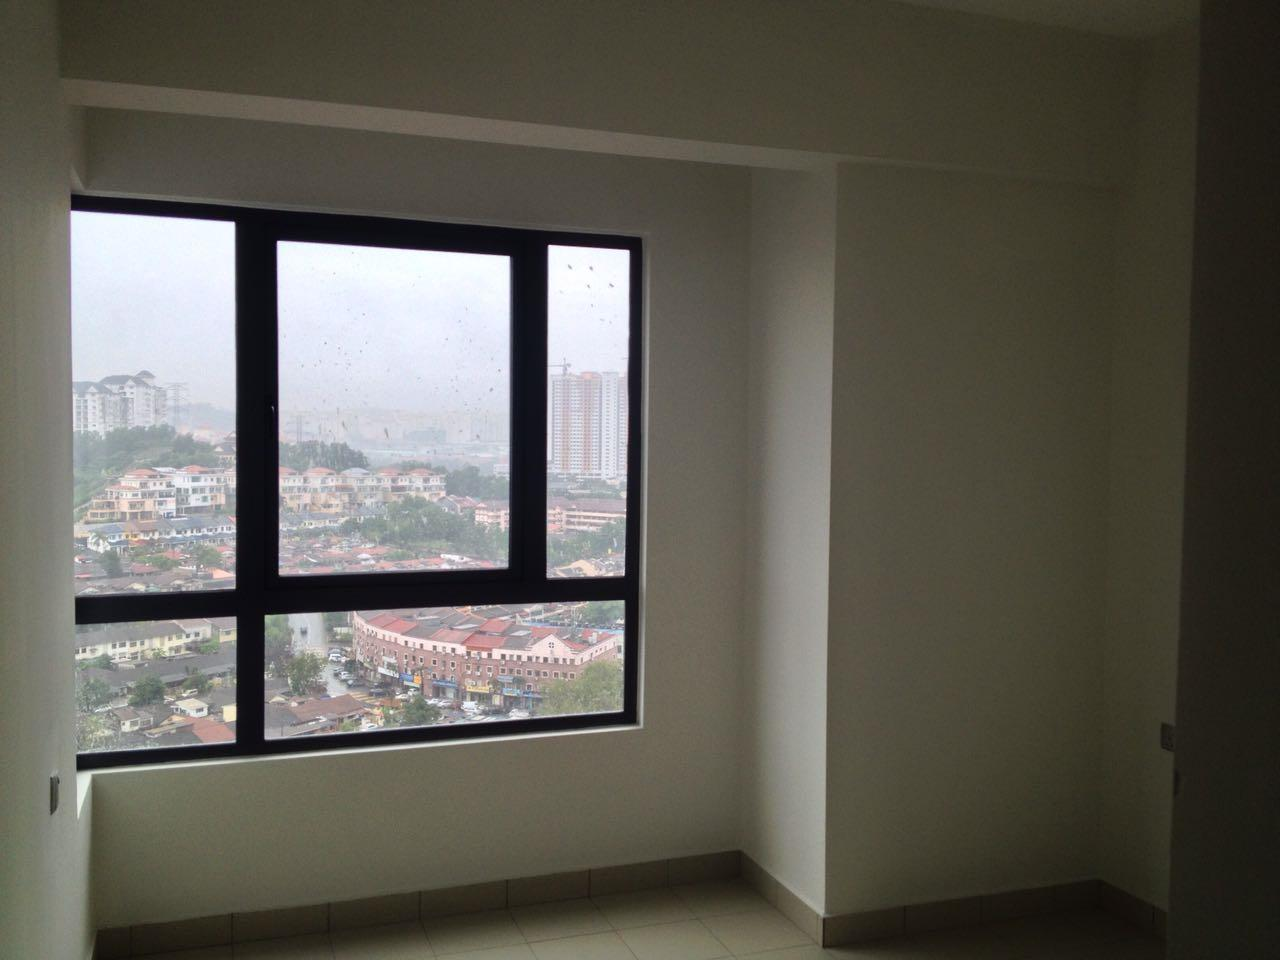 Residence 8 Condo for rent, Studio, Near Midvalley, Old Klang Road